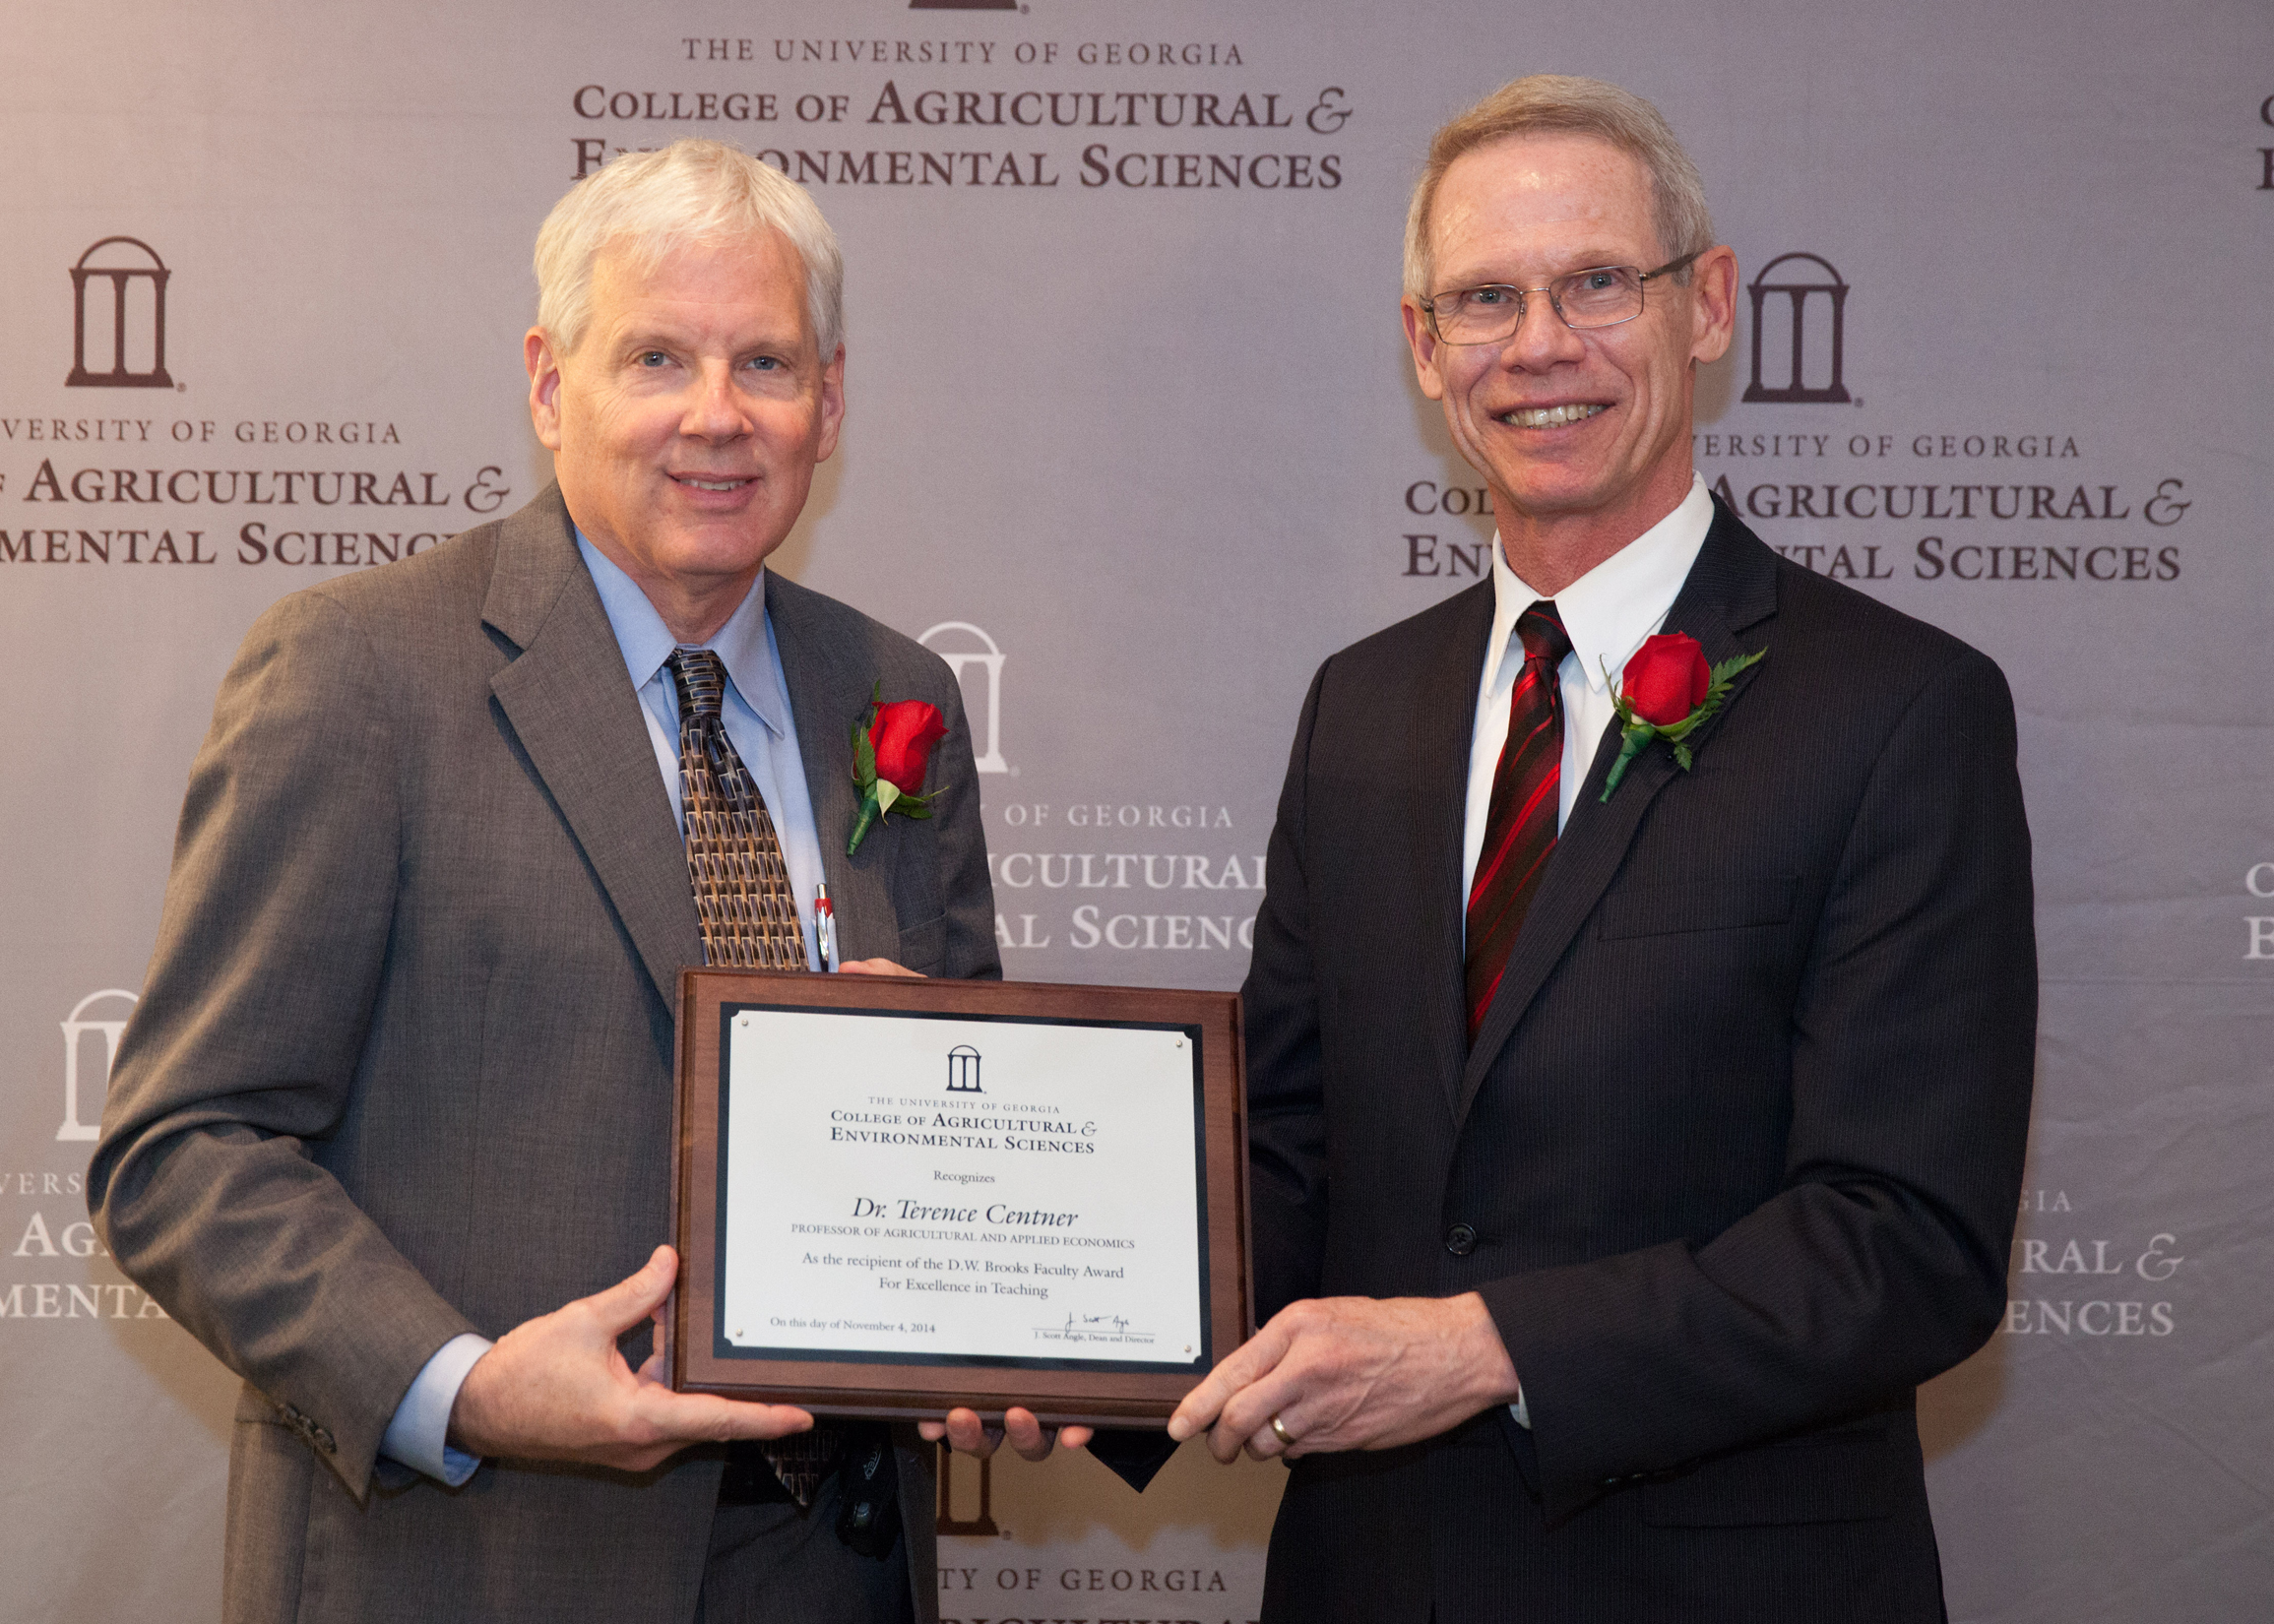 Dean J. Scott Angle presents Professor Terence Centner, of the Department of Agricultural and Applied Economics, with the D.W. Brooks Faculty Award for Excellence in Teaching. The award recognizes his work developing the college's pre-law and environmental law programs, and his innovative instruction in the classroom.